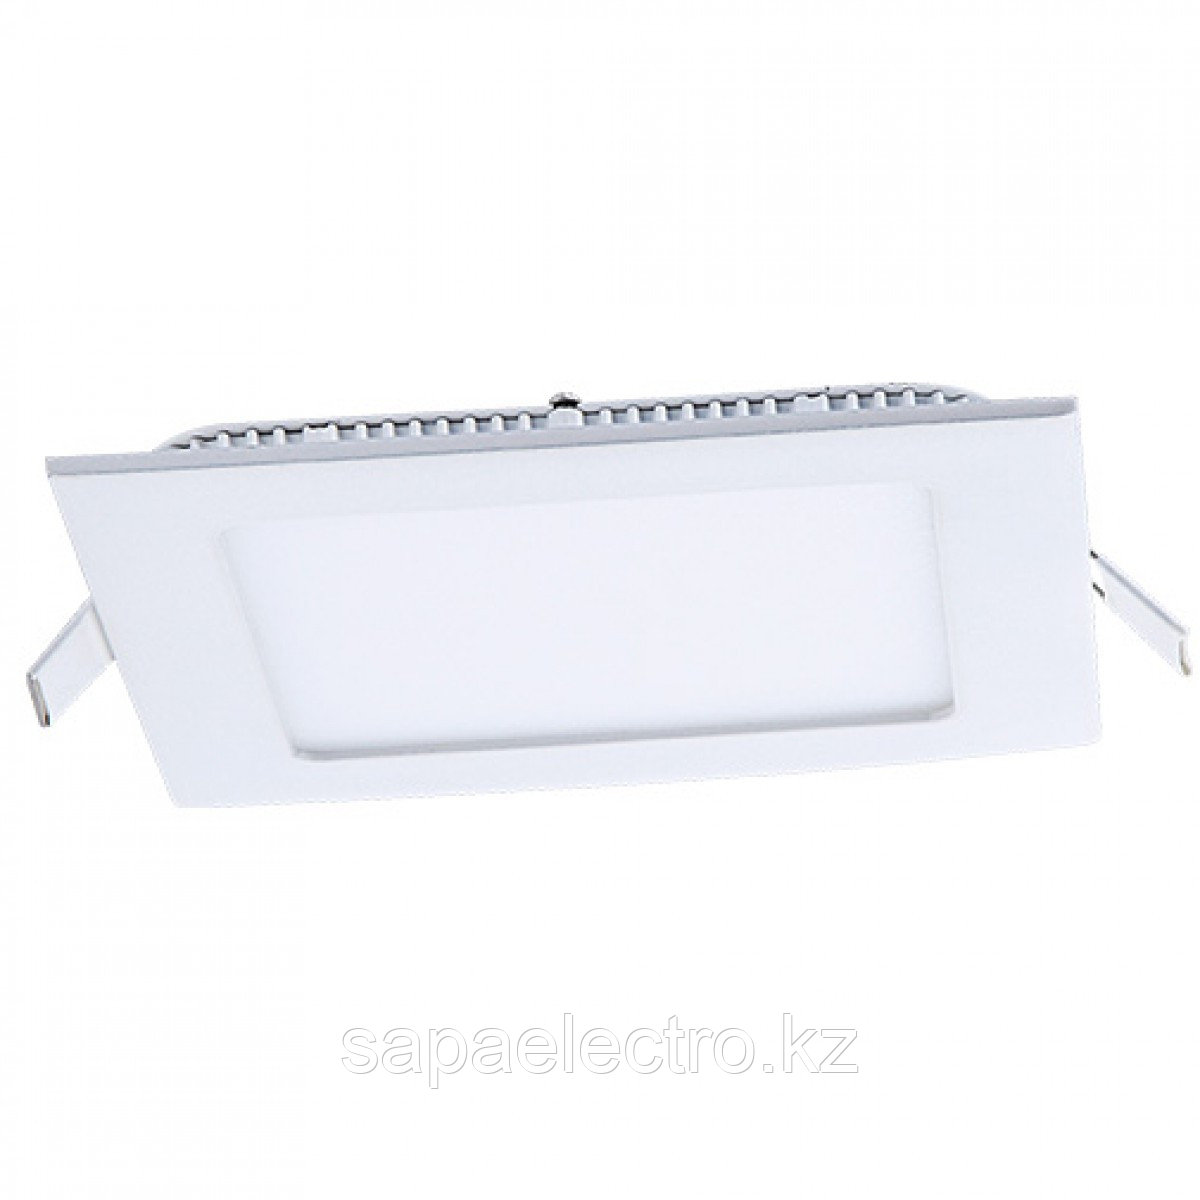 Свет-к DL LED KVADRO PANEL 3W 6000K (TS) 100шт